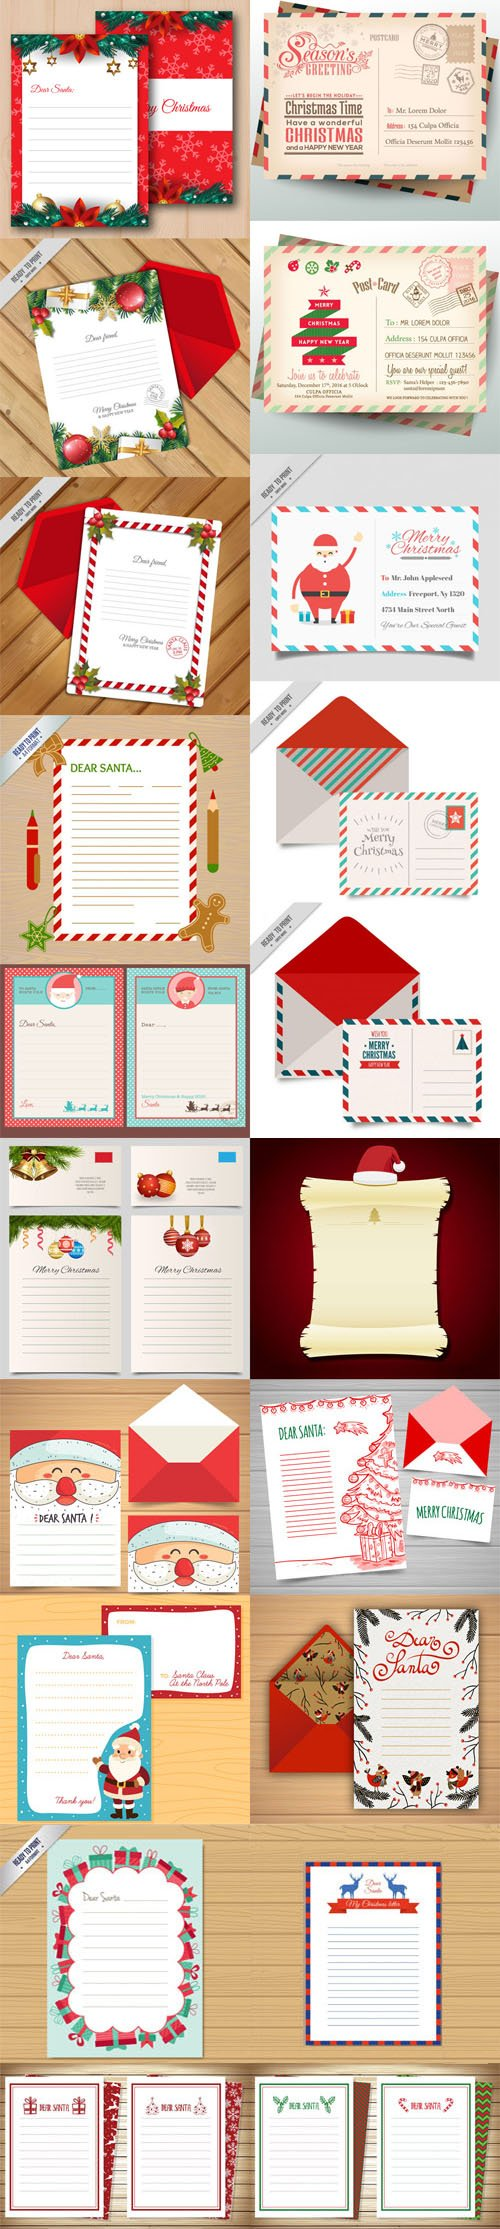 Merry Christmas Letter Templates with Envelope Collection 1